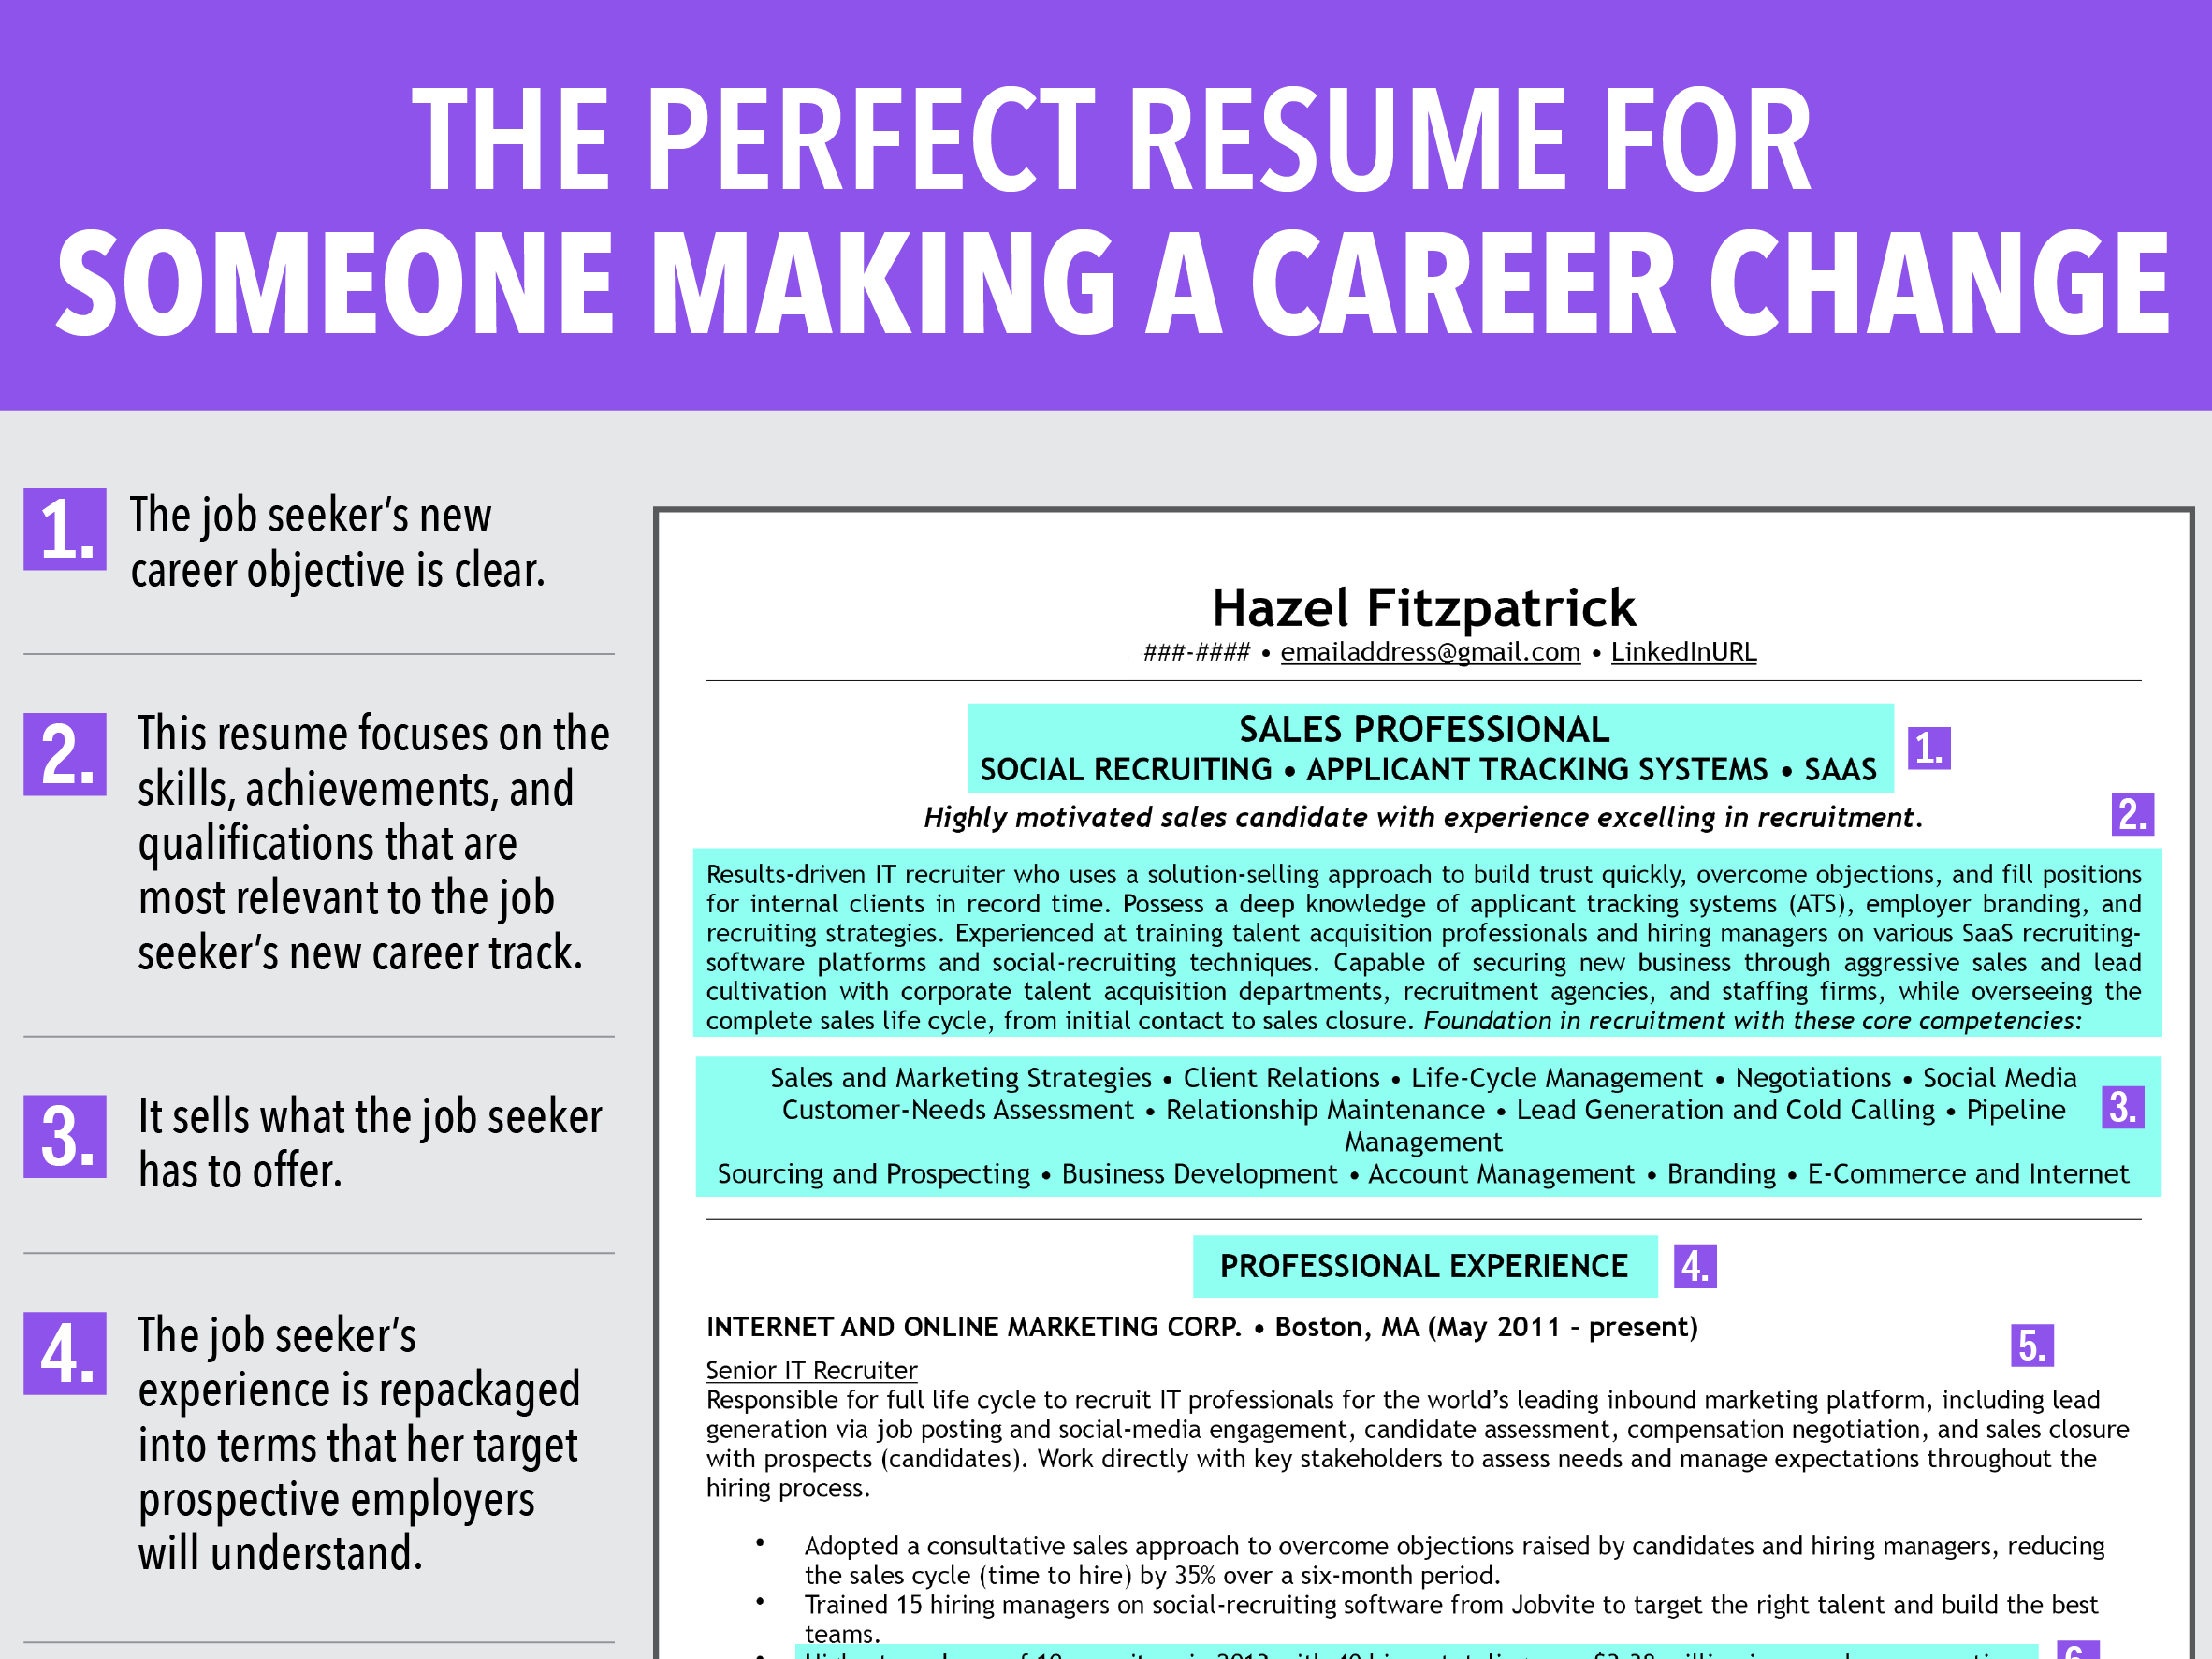 making your resume interesting professional resume cover letter making your resume interesting are social media making the resume obsolete cnn resume skylogic write resume